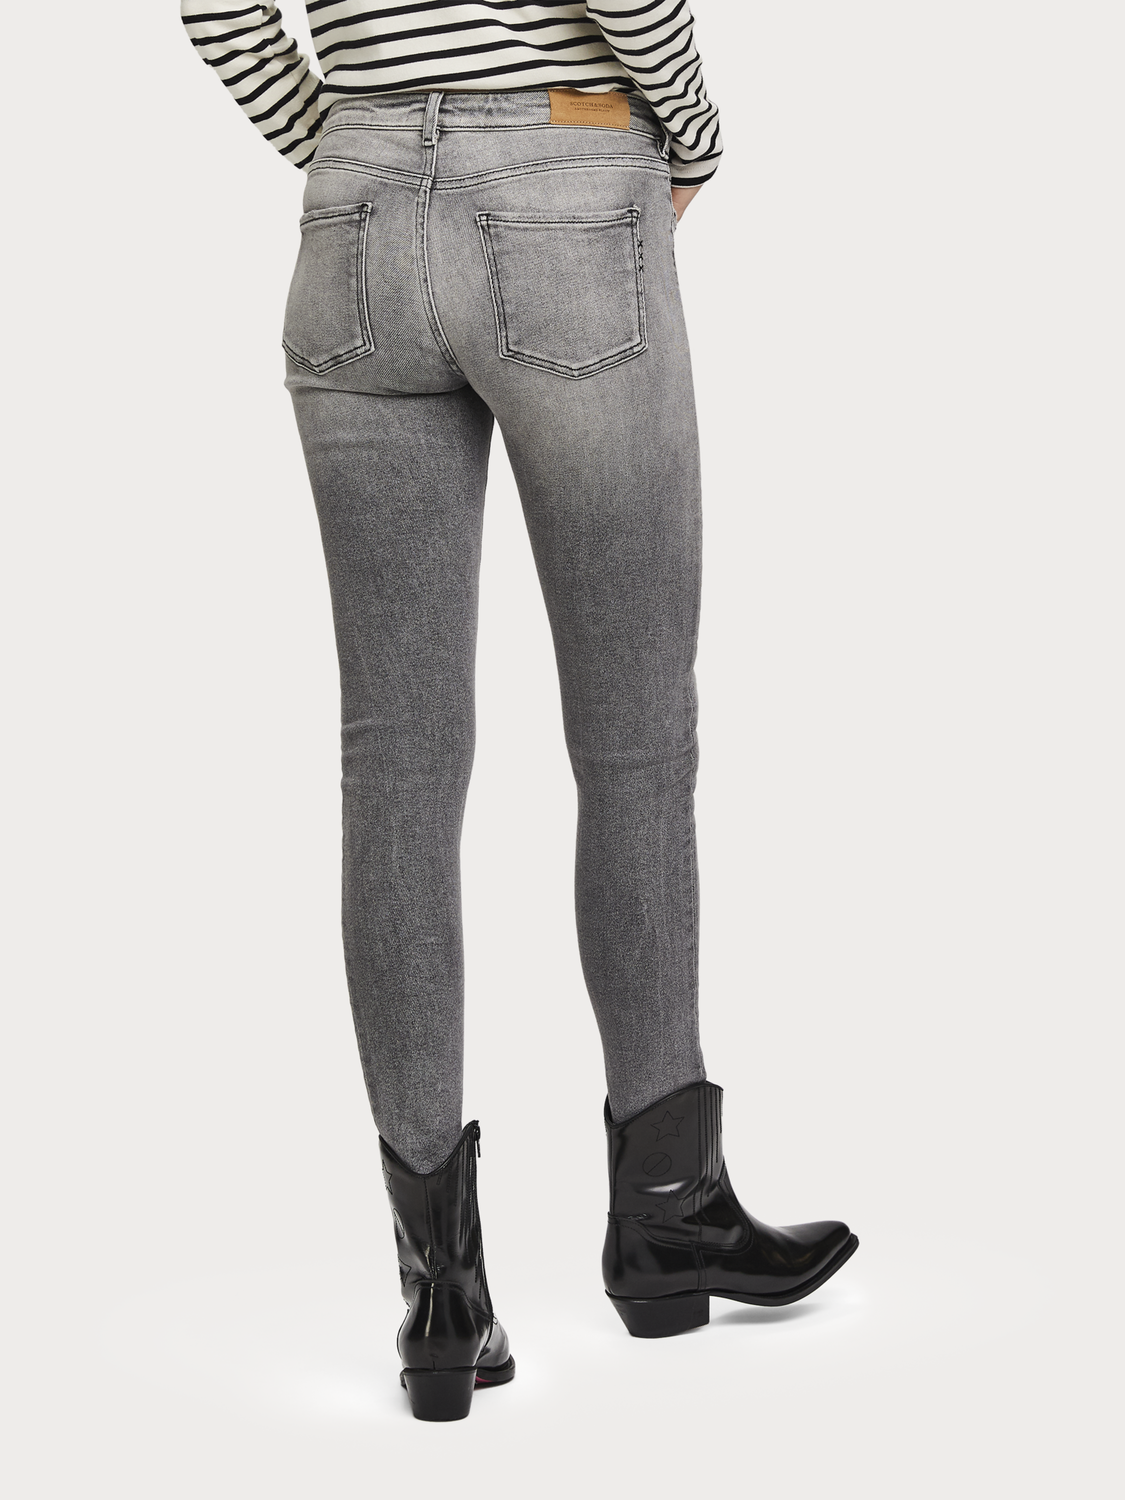 Donna La Bohemienne - The Great Grey | Mid rise skinny fit